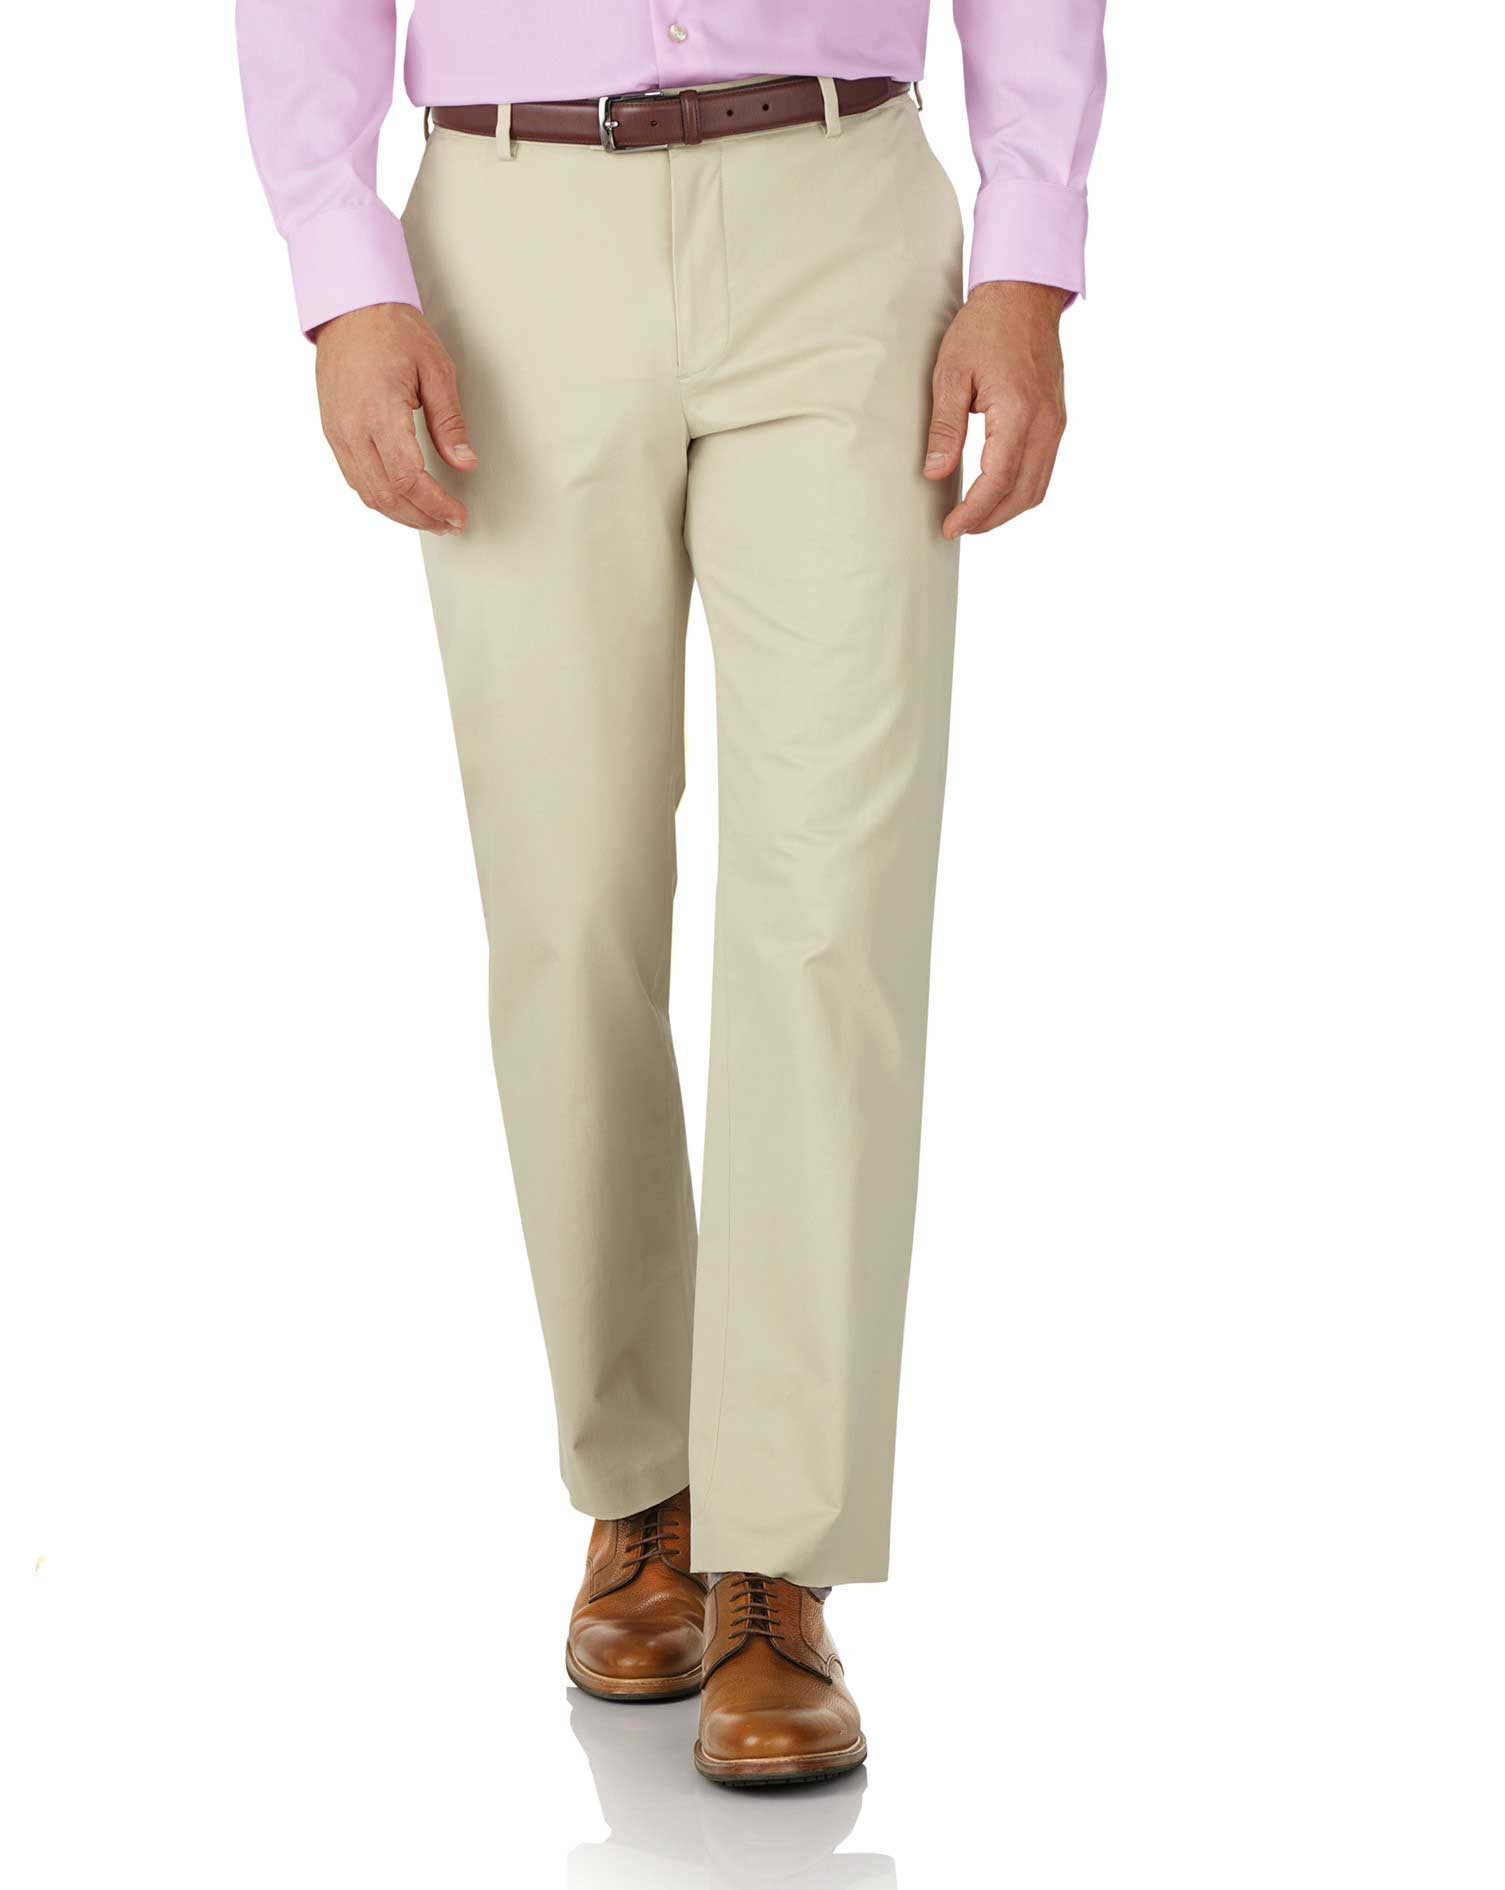 Stone Classic Fit Stretch Cotton Chino Trousers Size W34 L30 by Charles Tyrwhitt